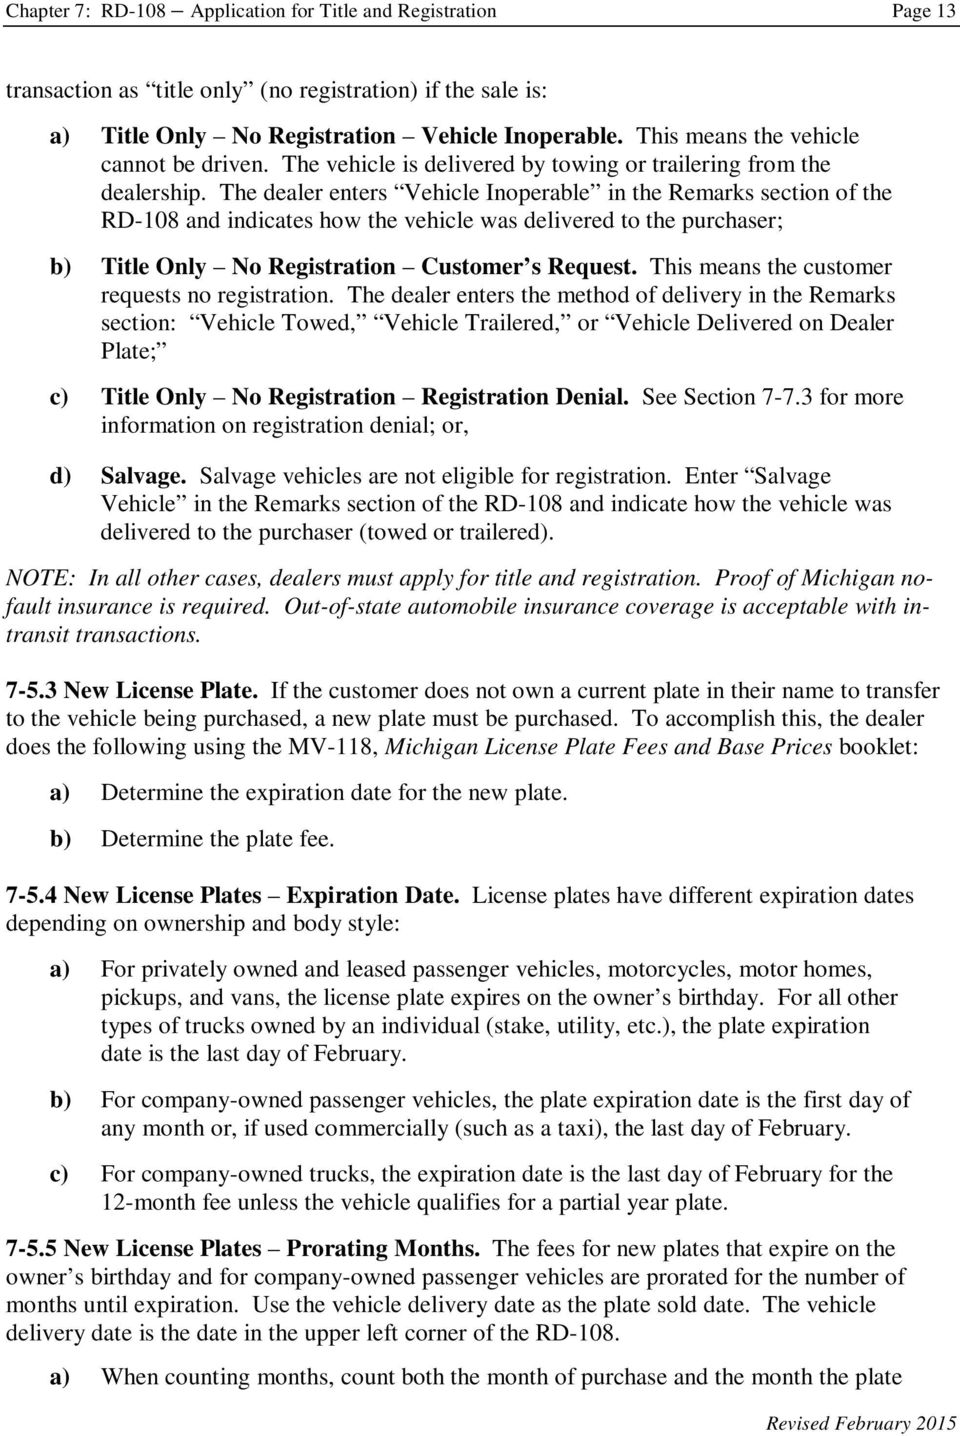 Chapter 7 Rd 108 Application For Title And Registration Pdf